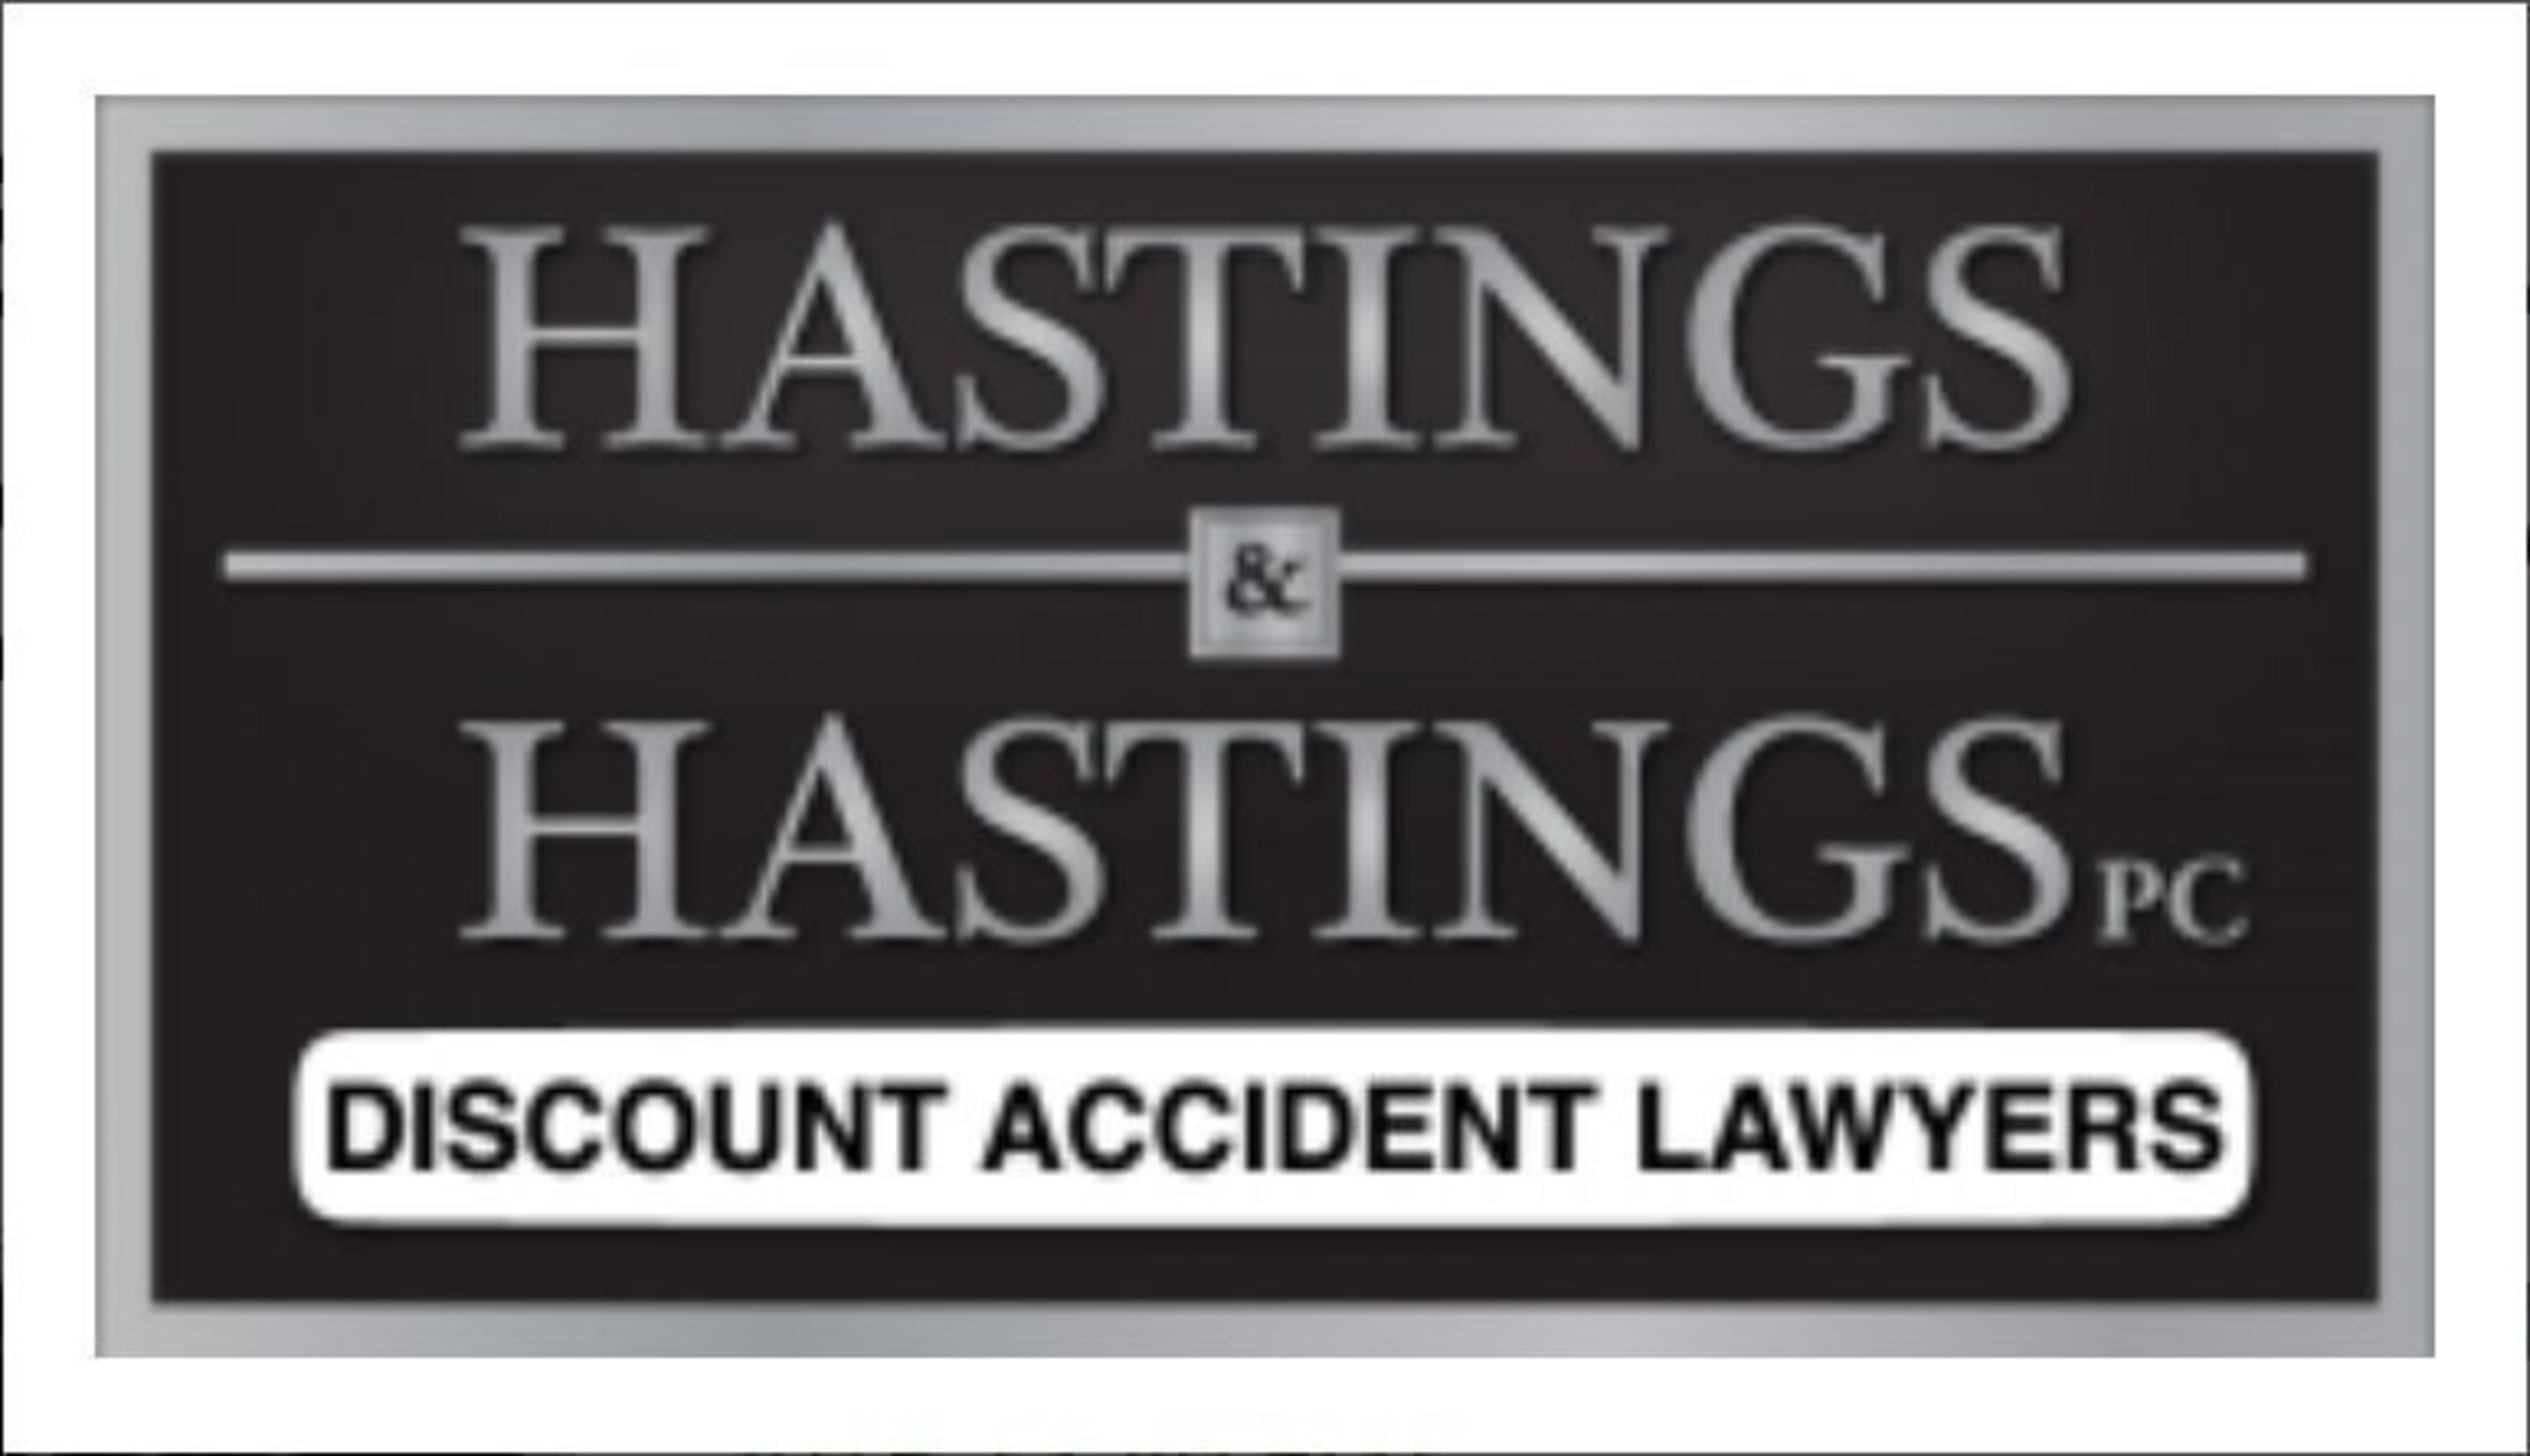 Hastings & Hastings Reports That Personal Injury Cases Involving Accidents Are on the Rise